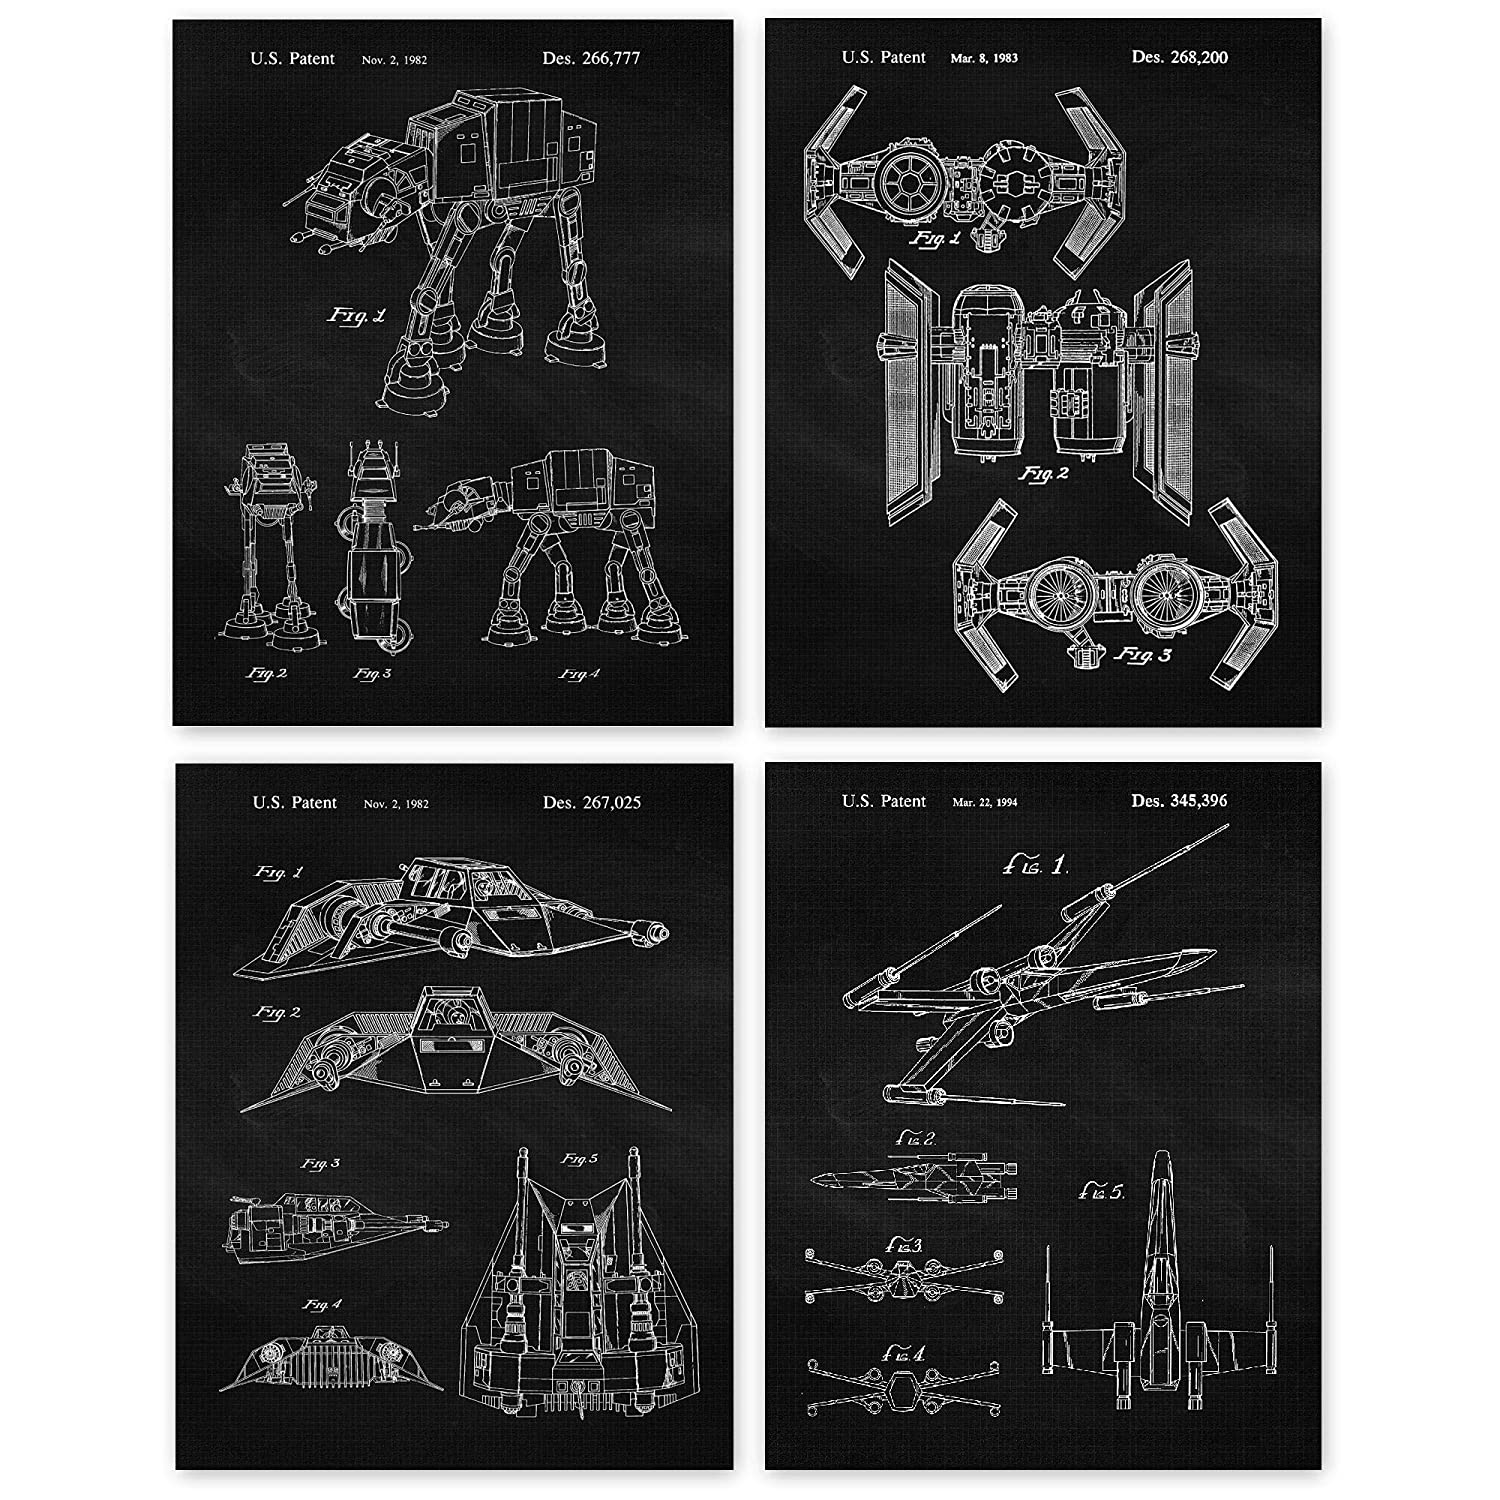 Vintage Star Wars Patent Art Poster Prints, Set of 4 (11x14) Unframed Photos, Great Wall Art Decor Gifts Under 25 for Home, Office, Garage, Studio, Man Cave, Student, Teacher, Comic-Con & Movies Fan